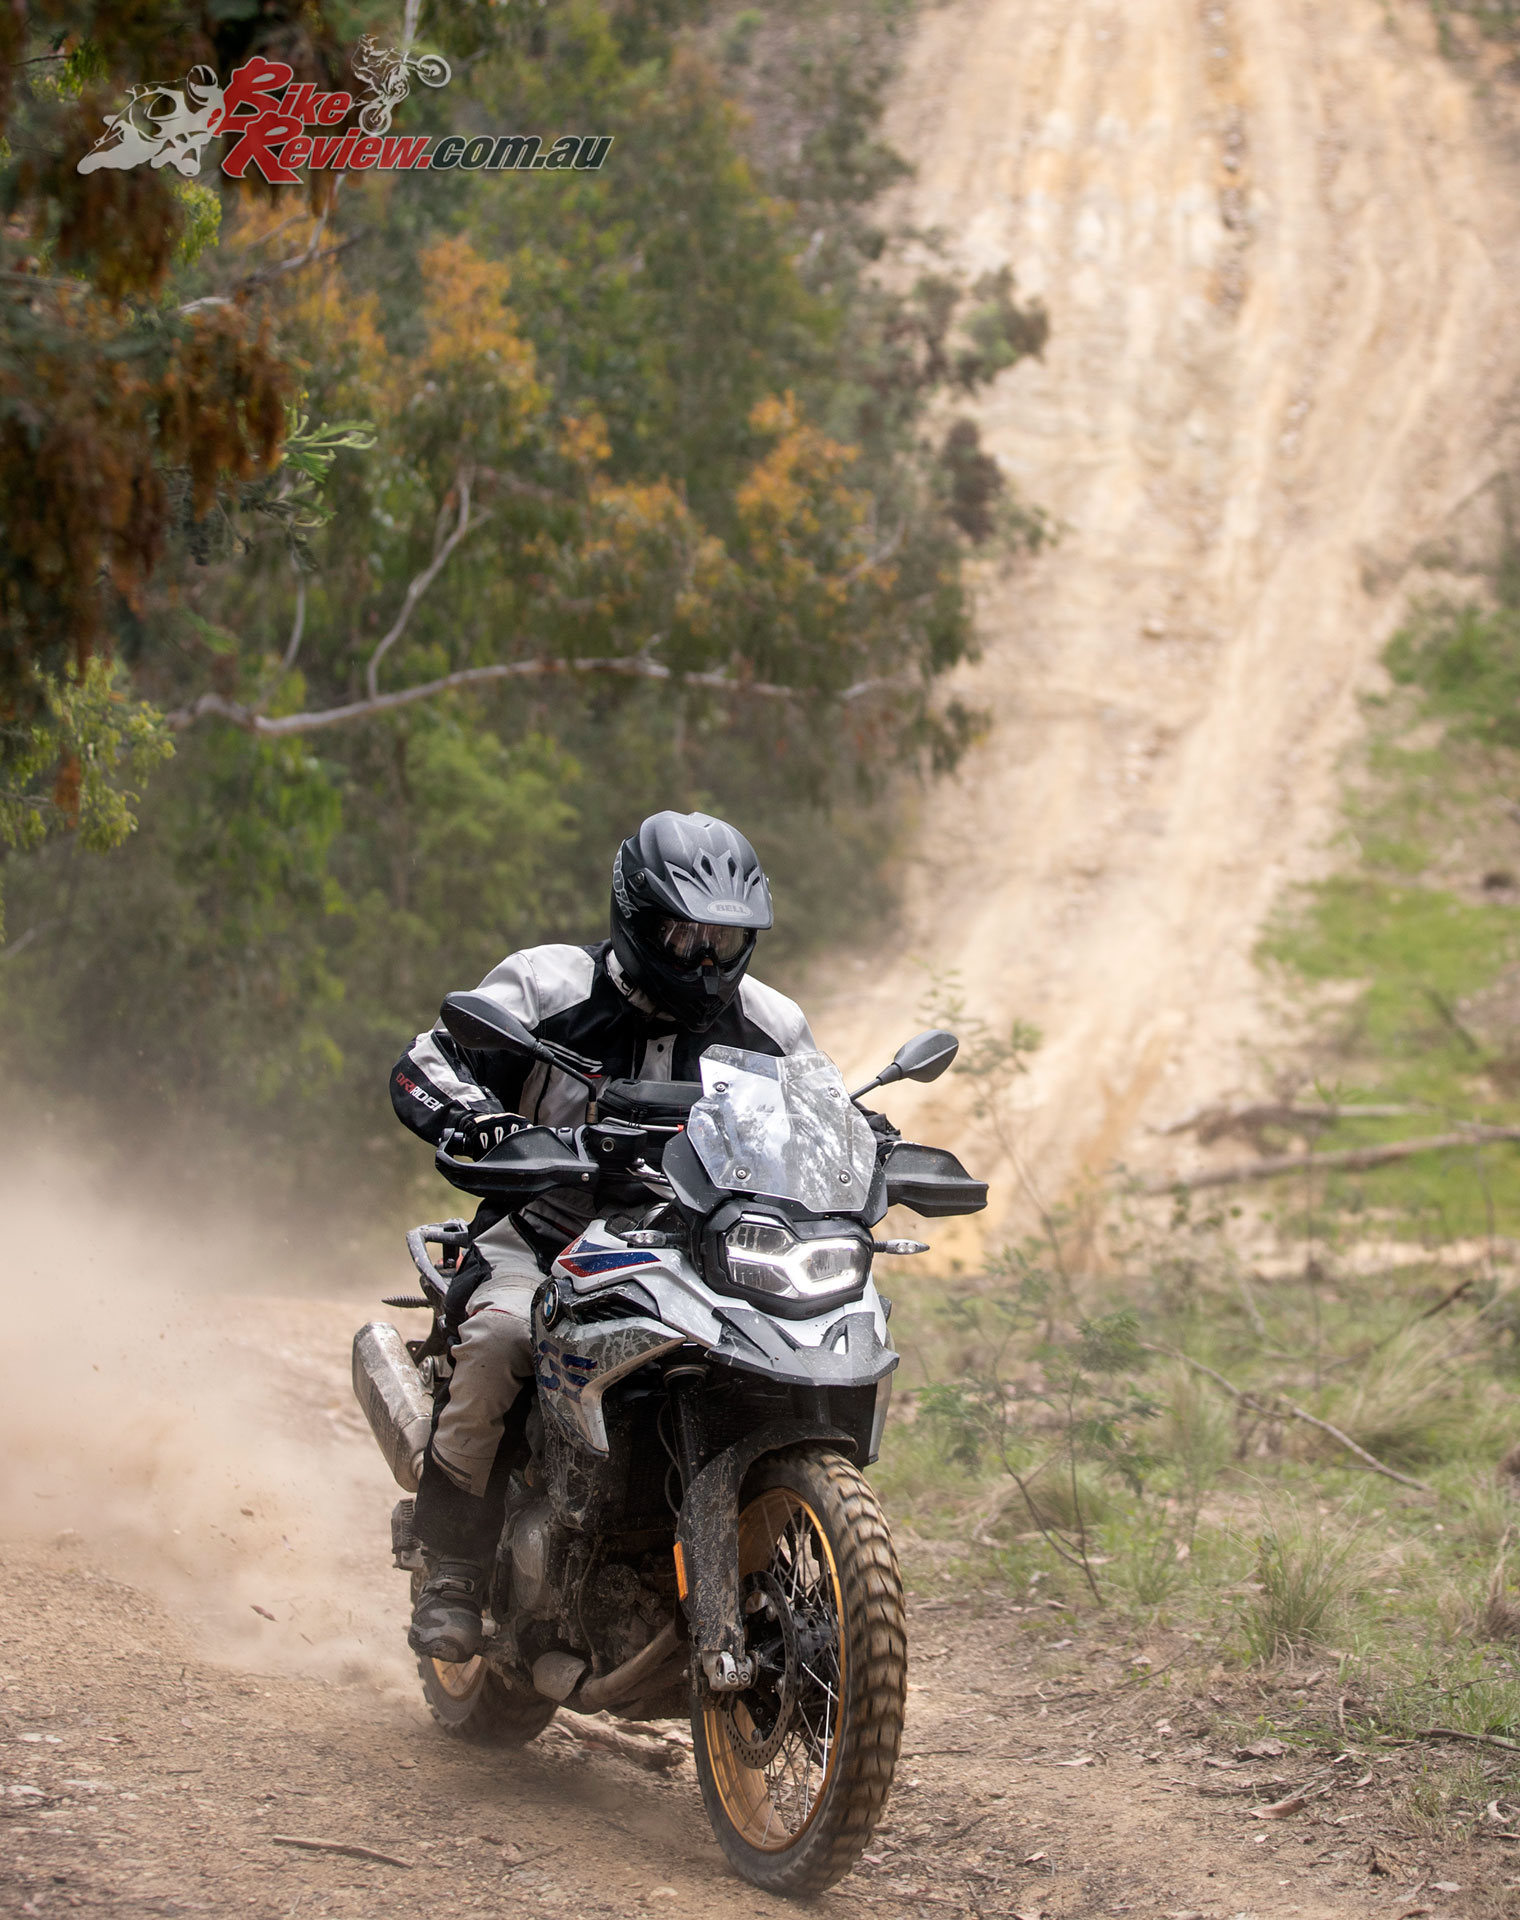 The F 850 GS's off-road ability is high and expert riders will appreciate the chassis and electronics.